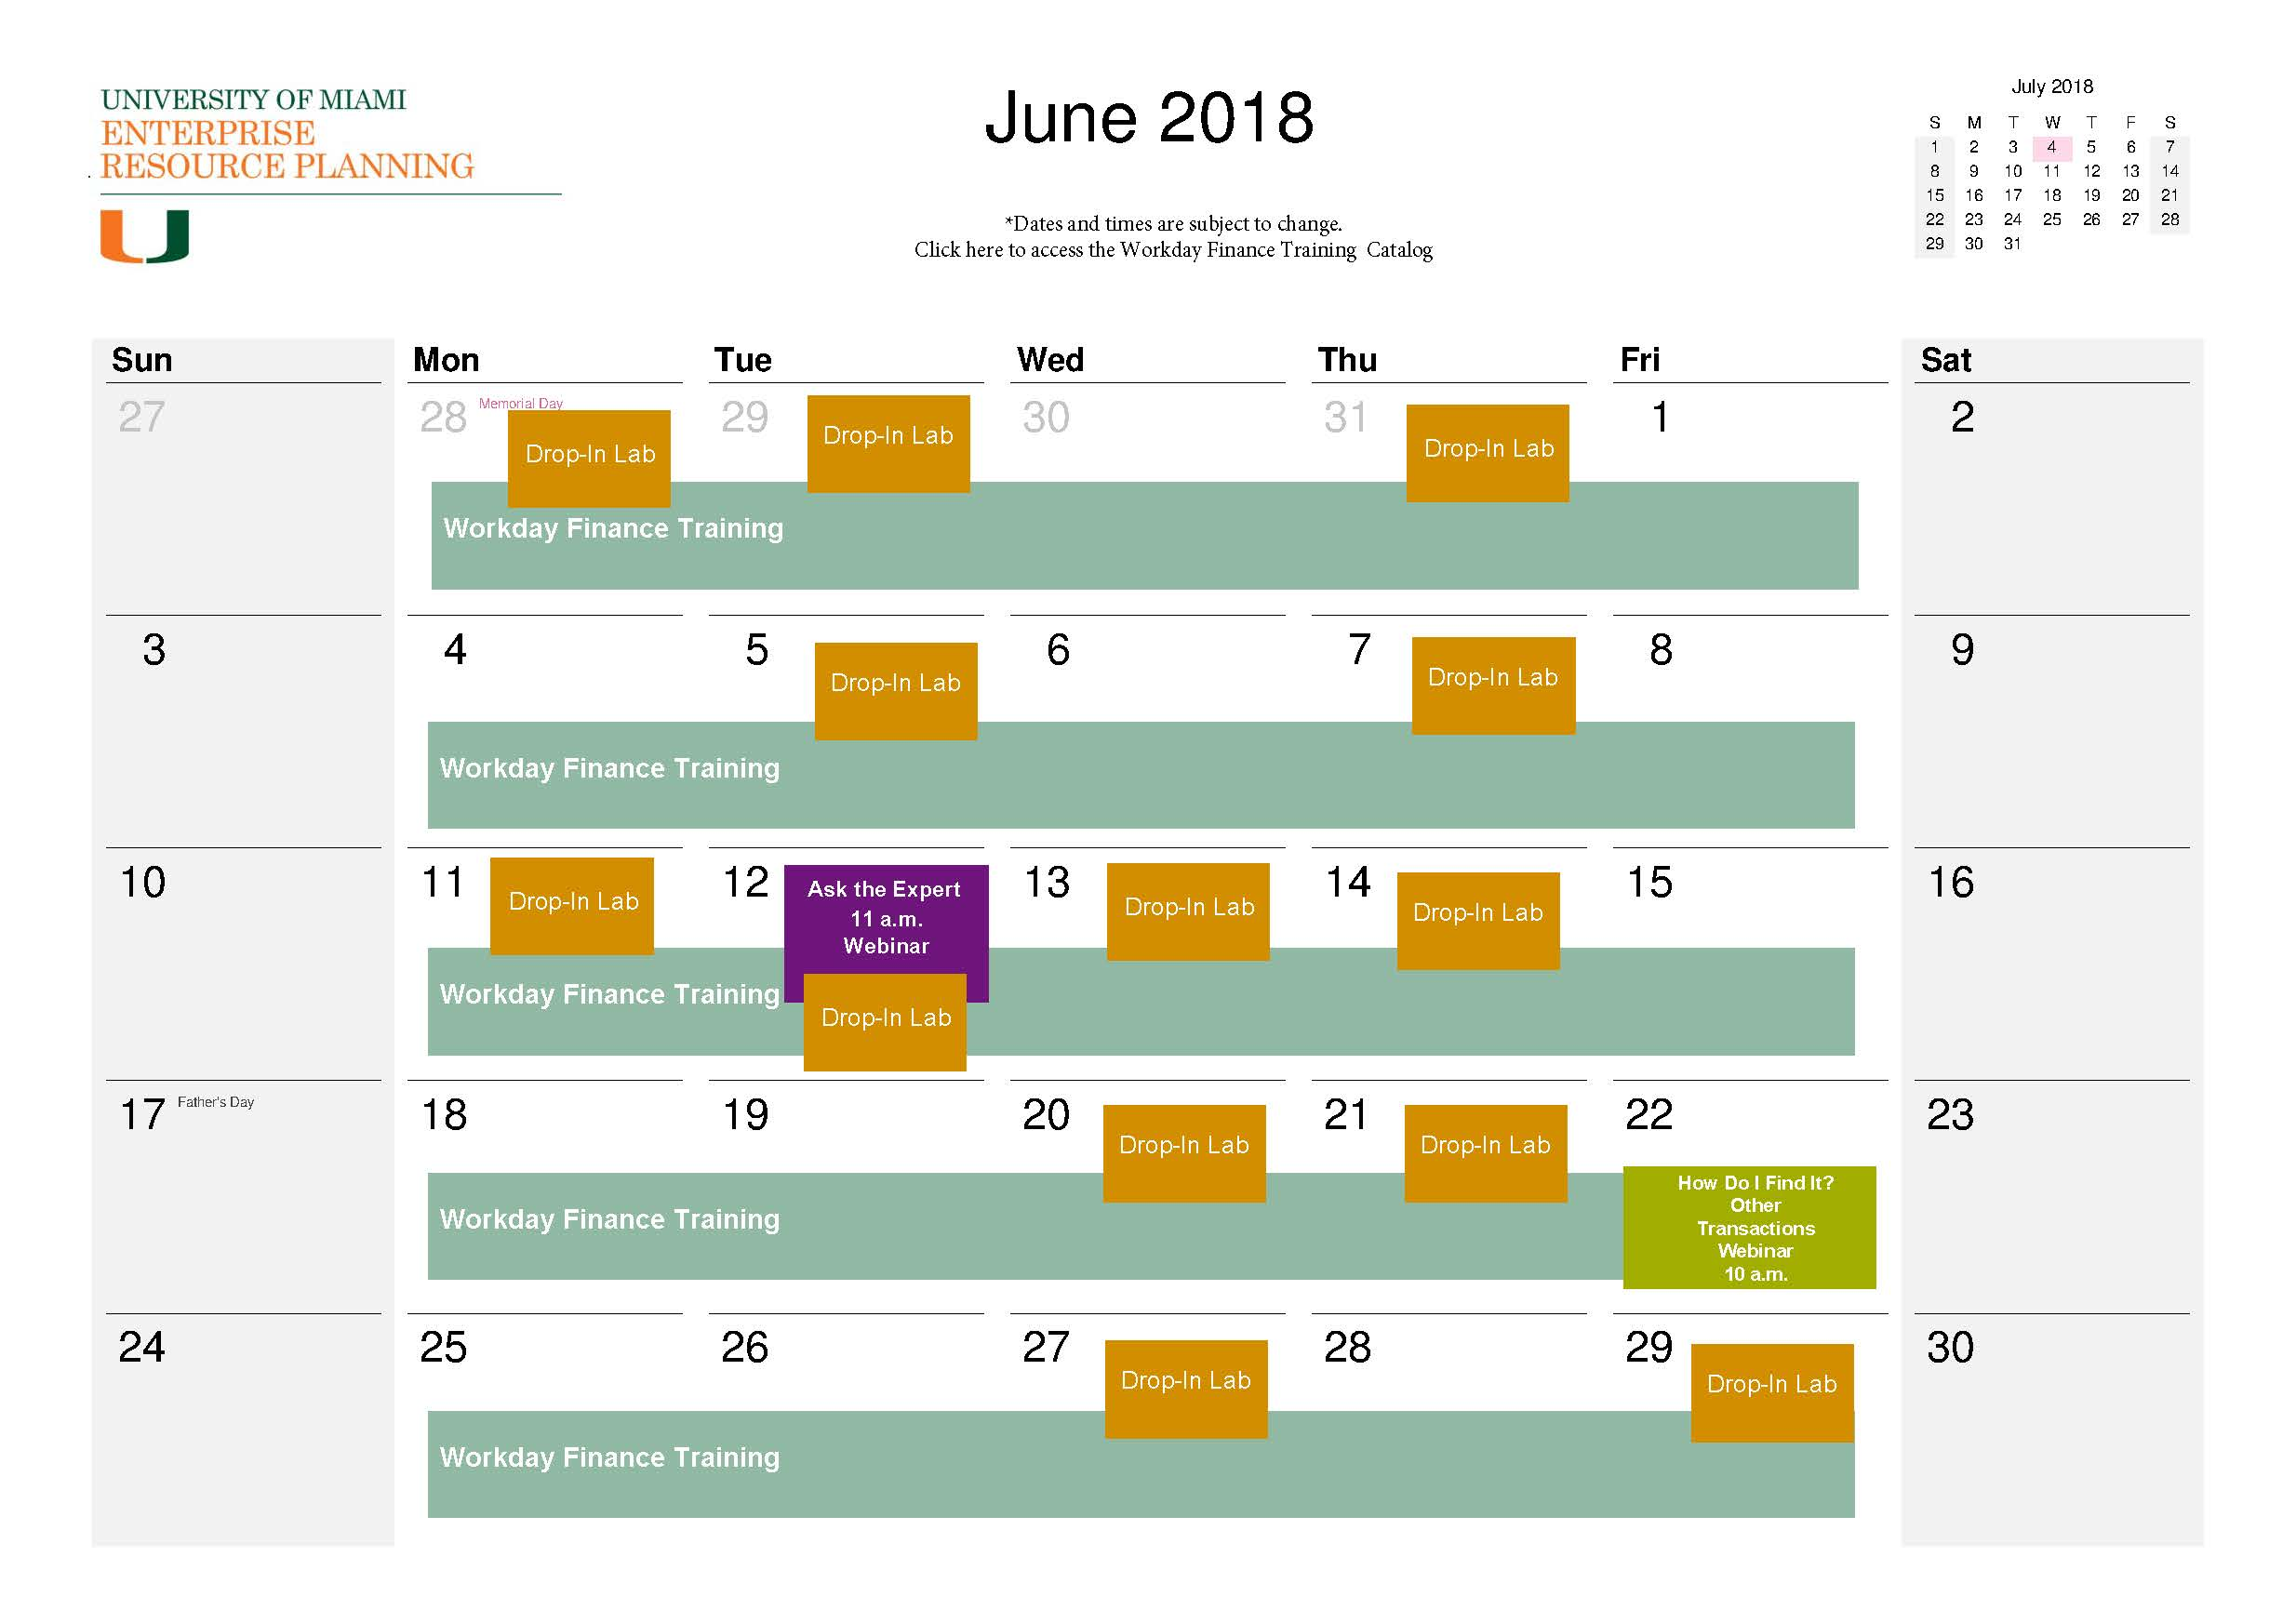 Workday Finance Event Calendar_April2018.jpg